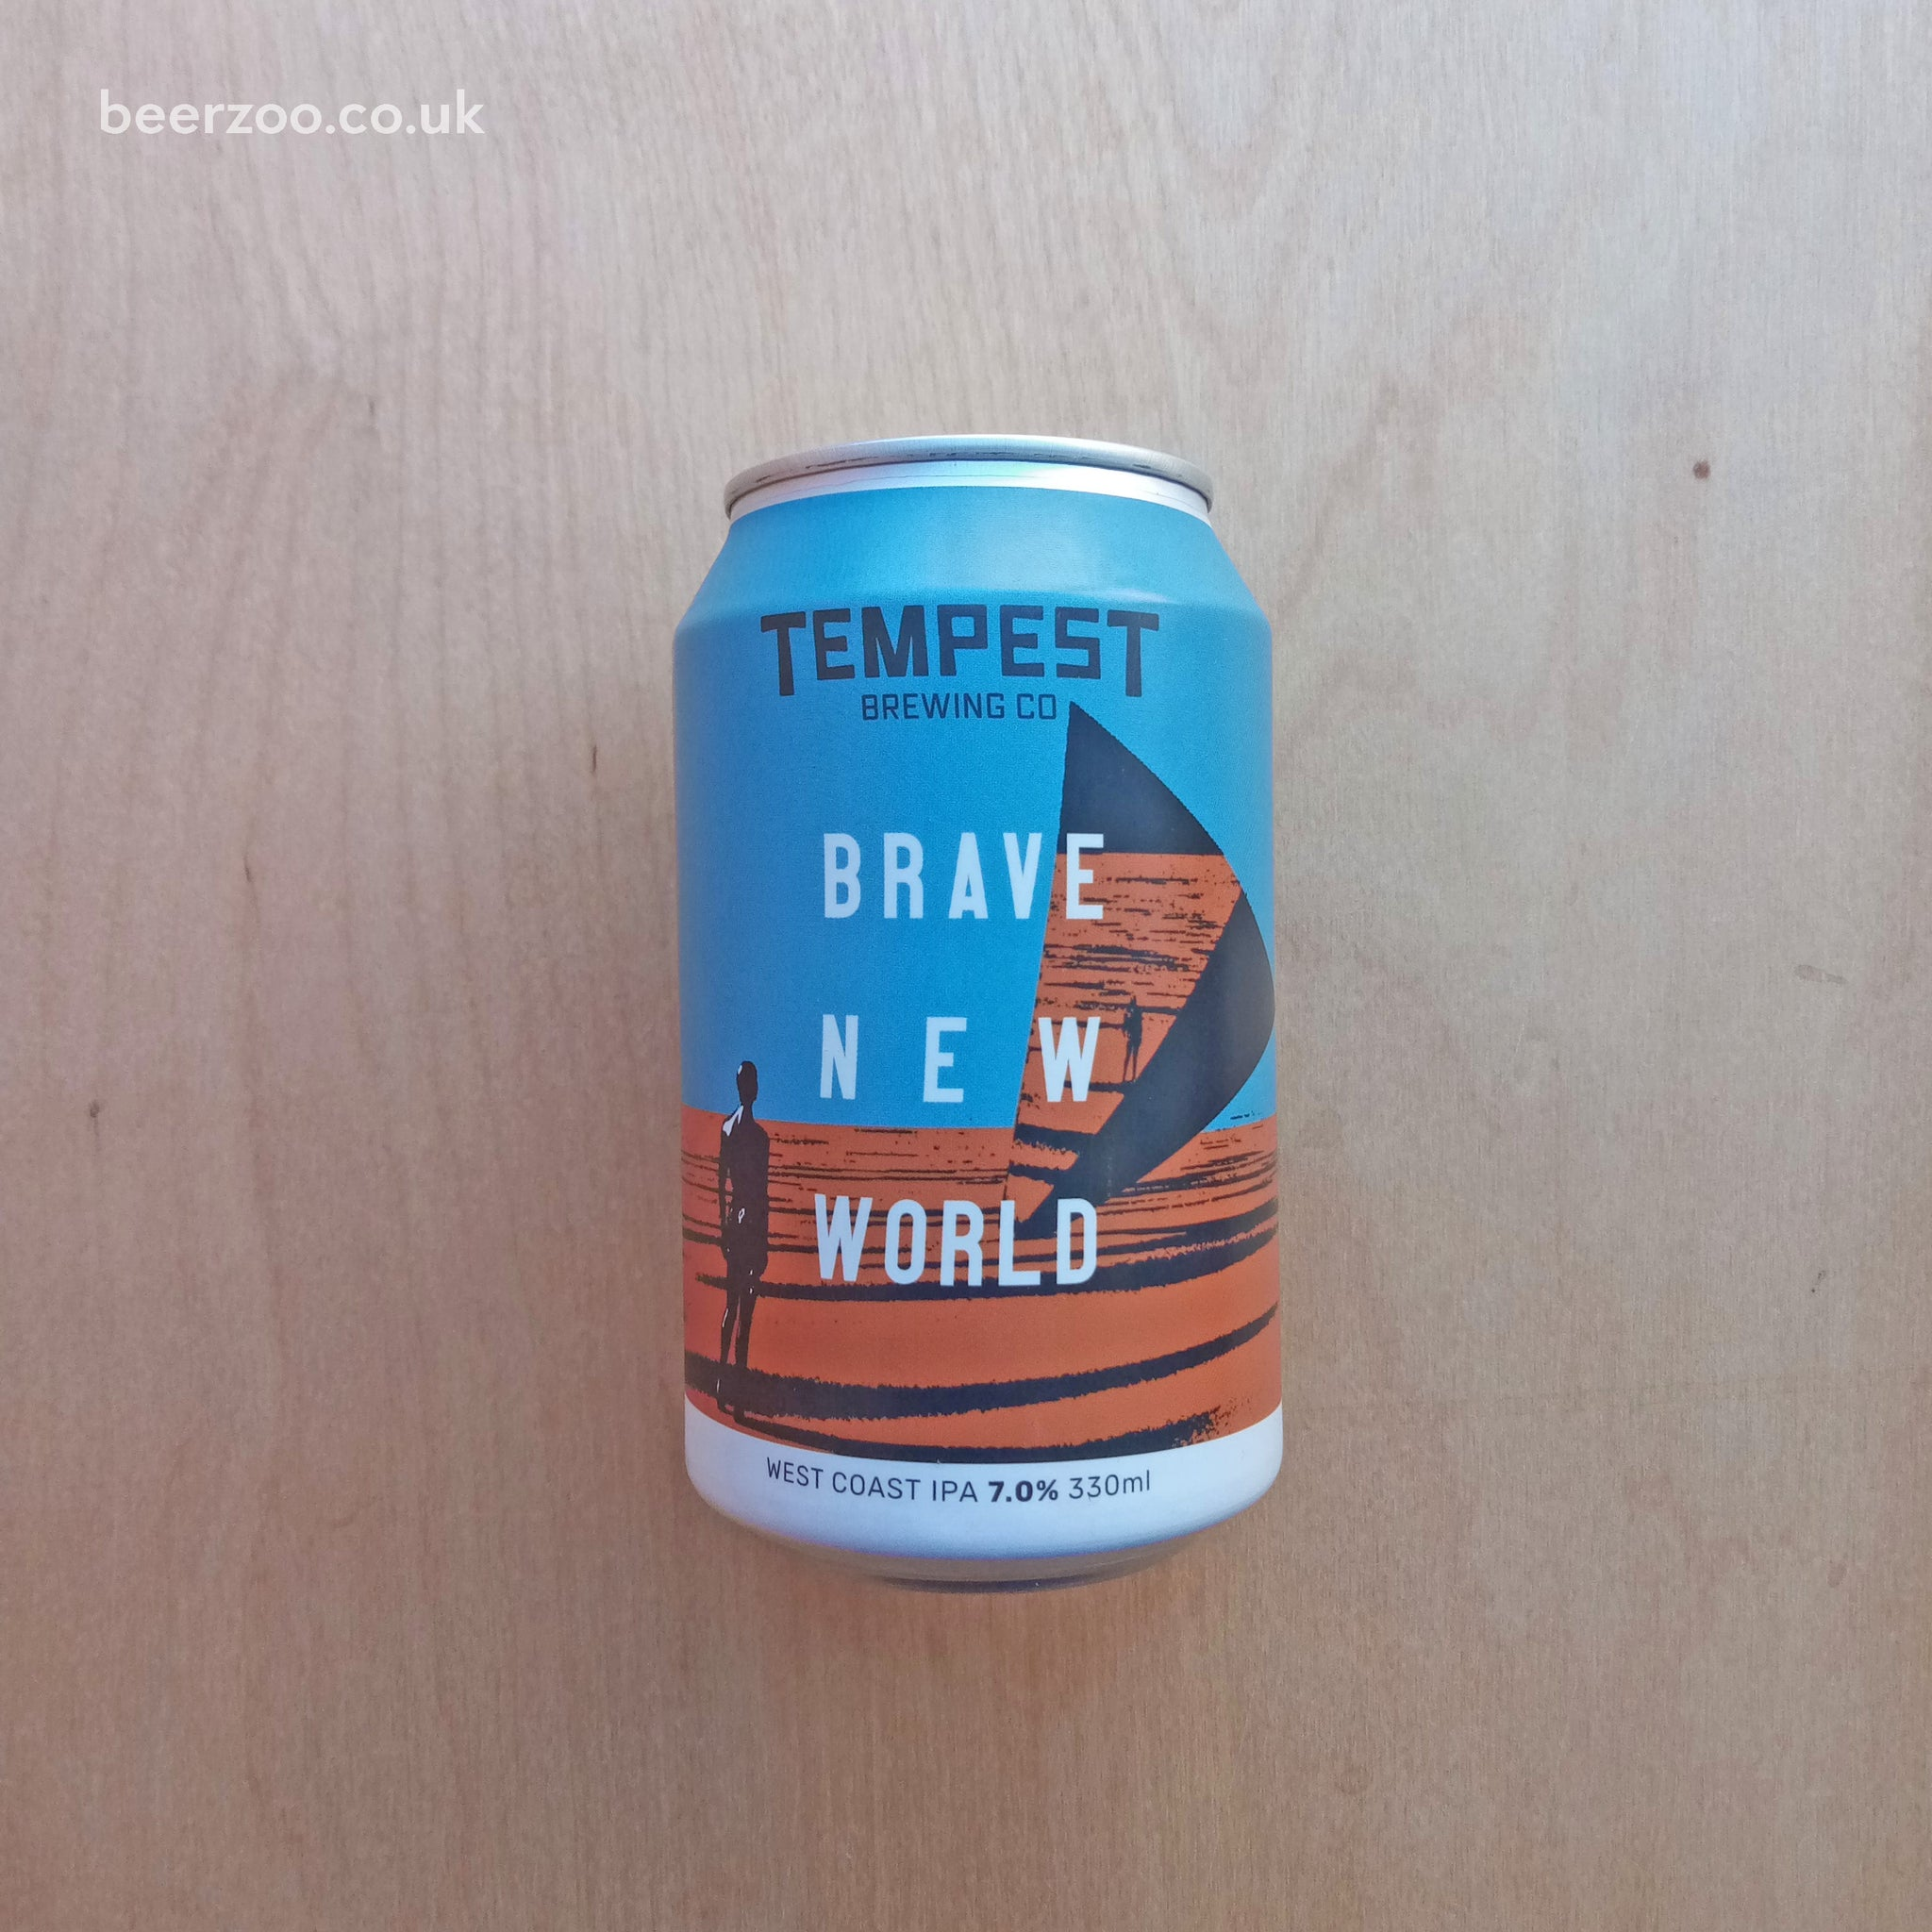 Tempest - Brave New World 7% (330ml)